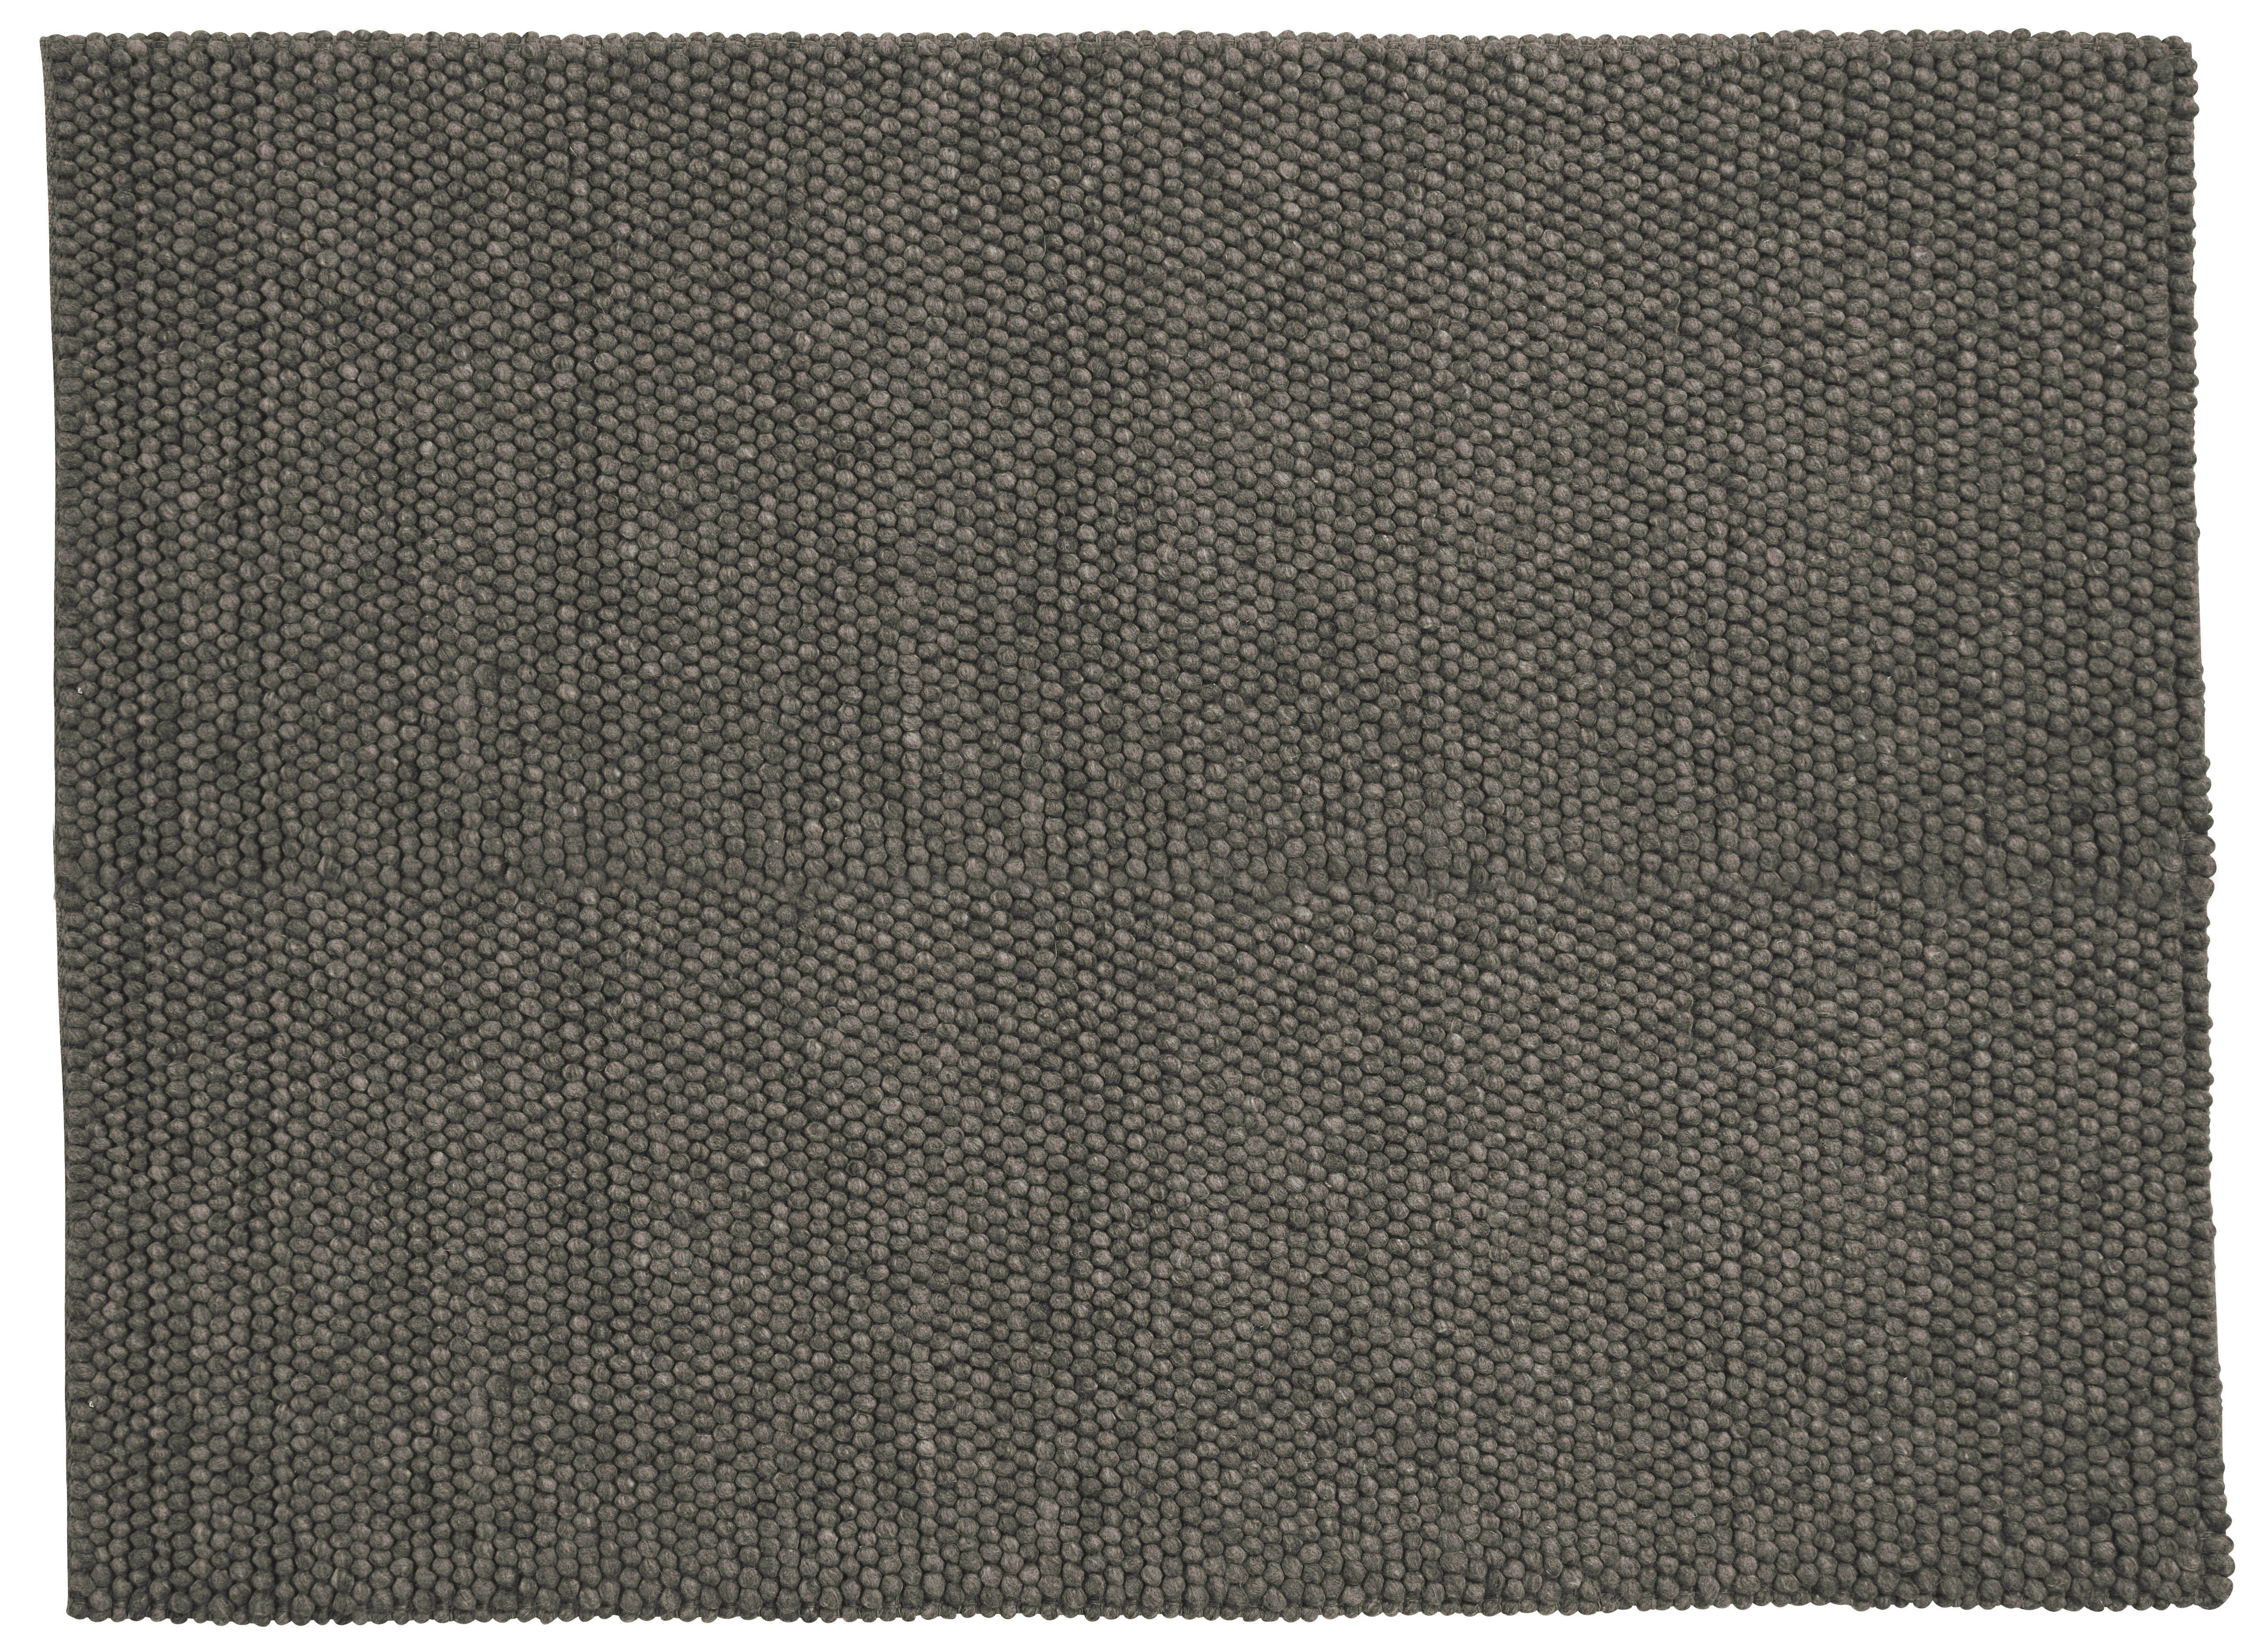 Topnotch Rug Peas by Hay - Dark grey | Made In Design UK PA-15